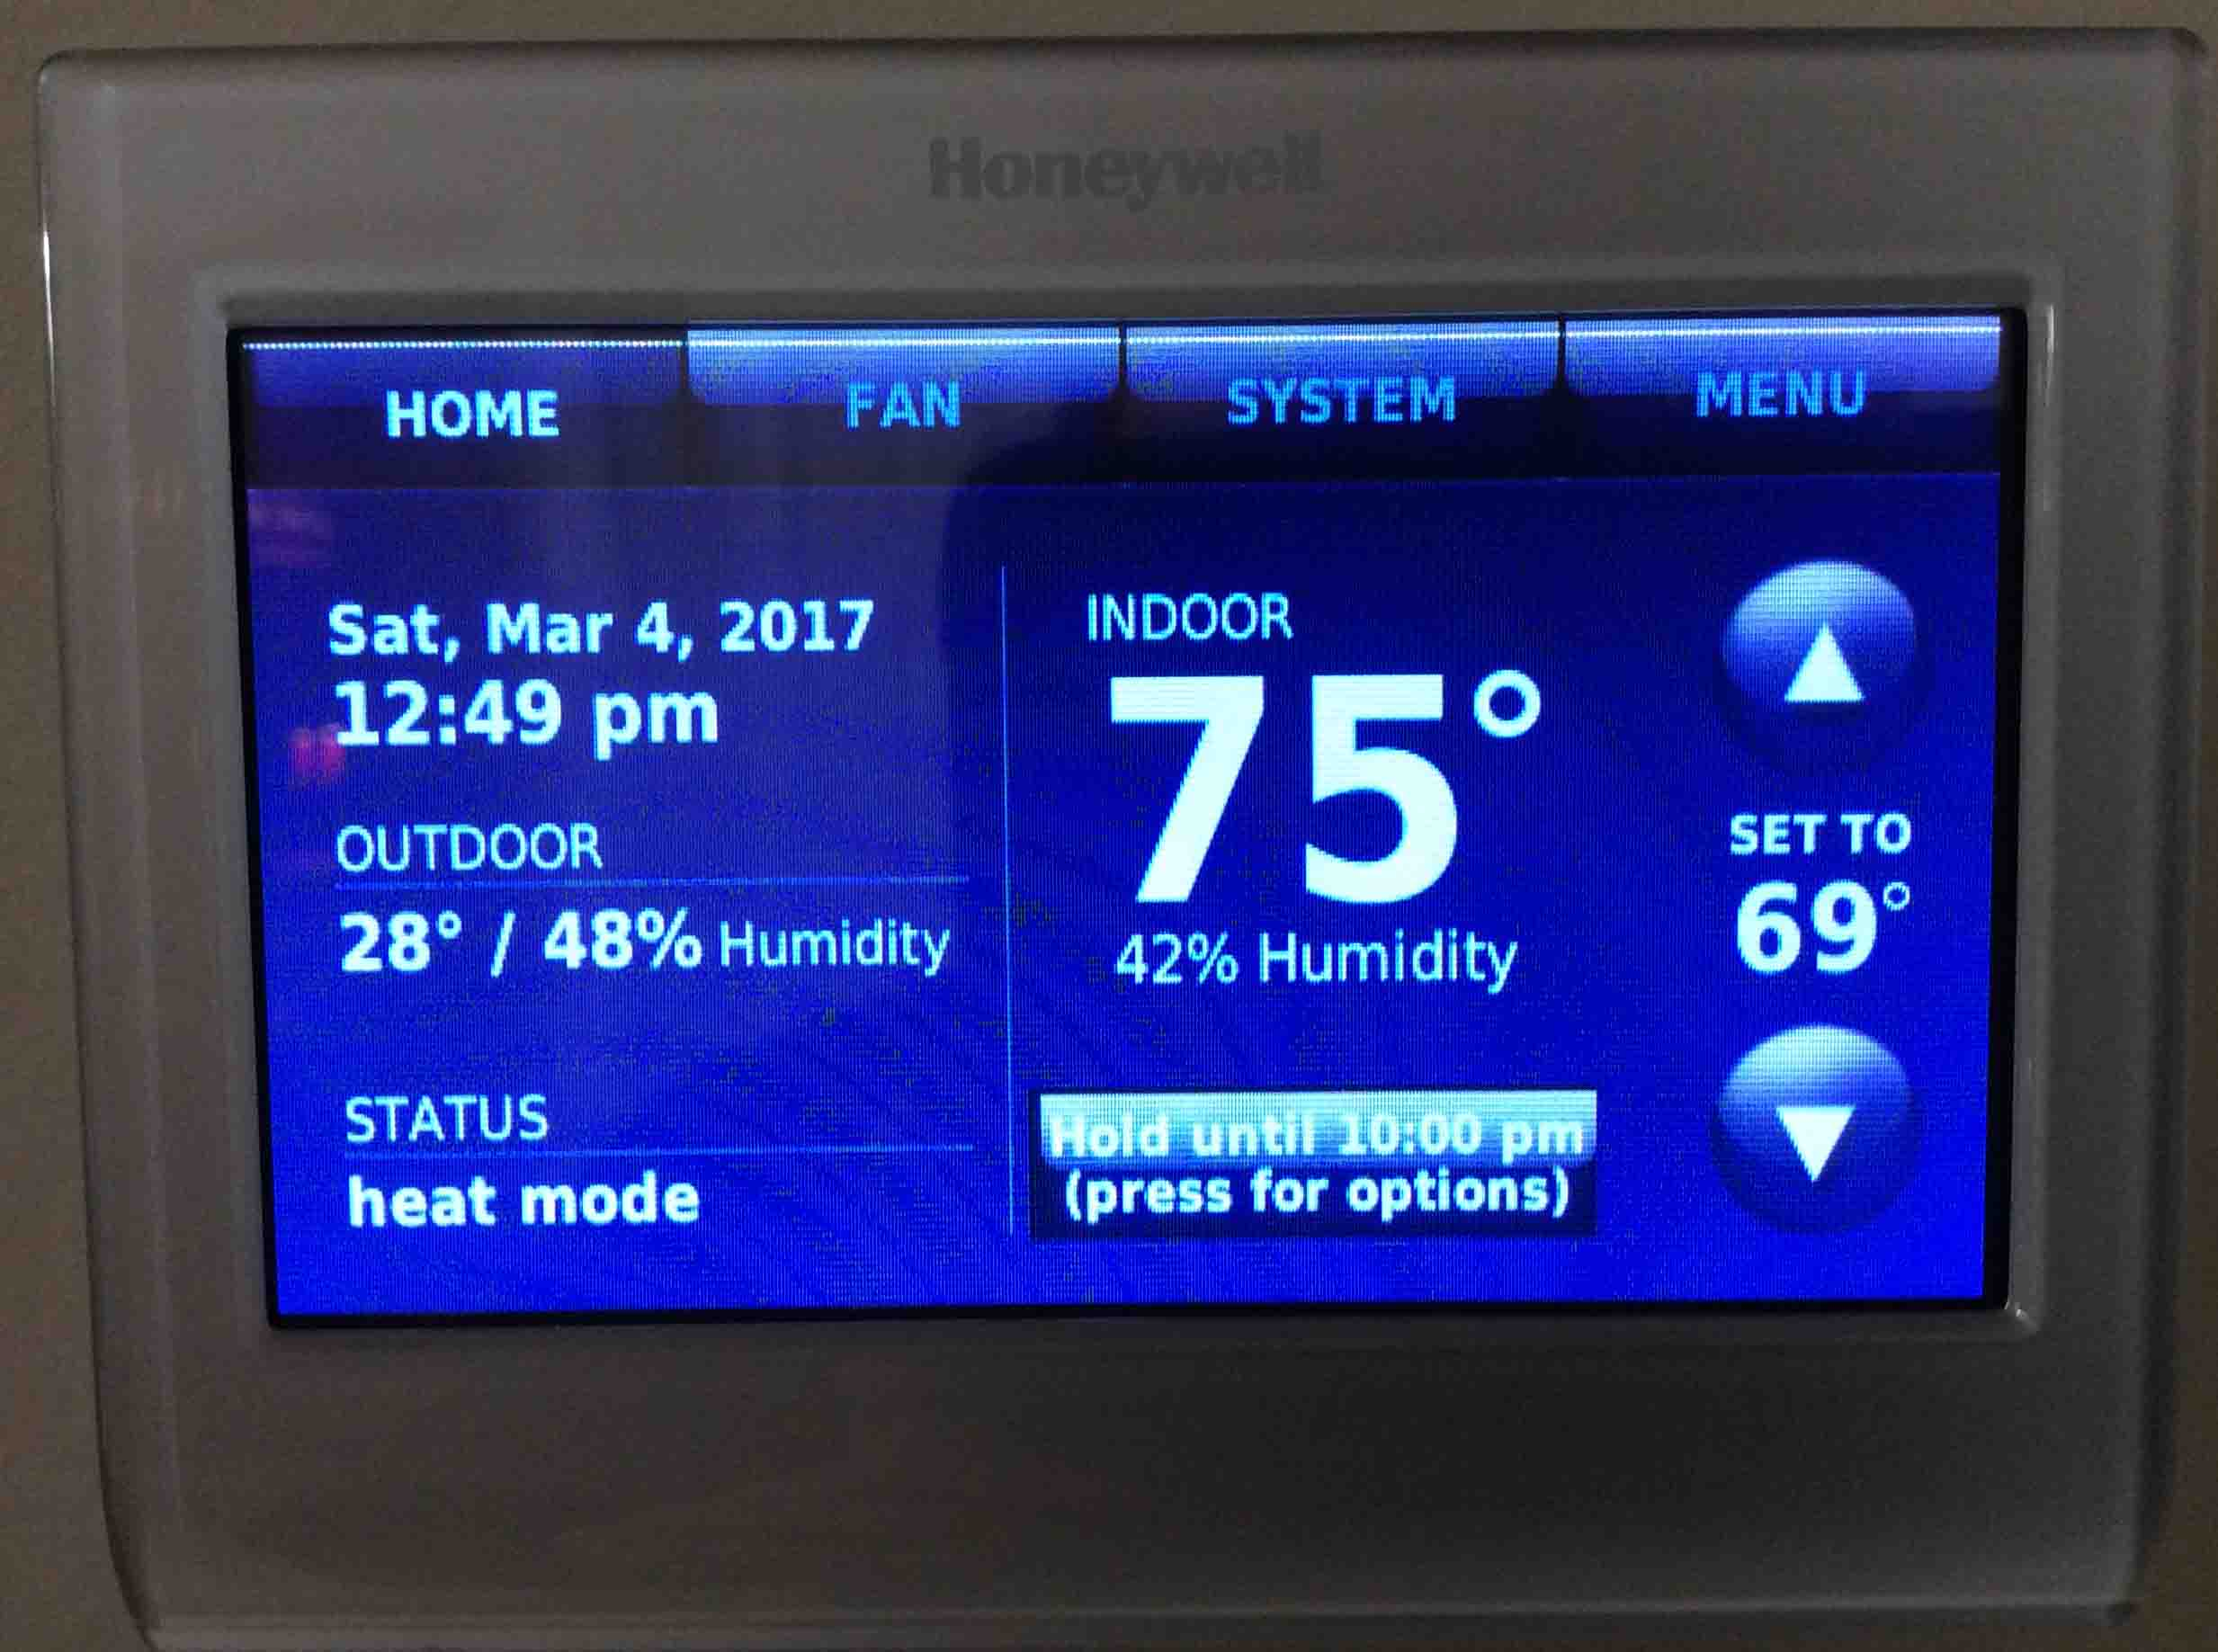 Honeywell Thermostat Not Reaching Set Temperature Troubleshooting Mercury Wiring Oil Furnace Picture Of The Rth9580wf Wireless Displaying